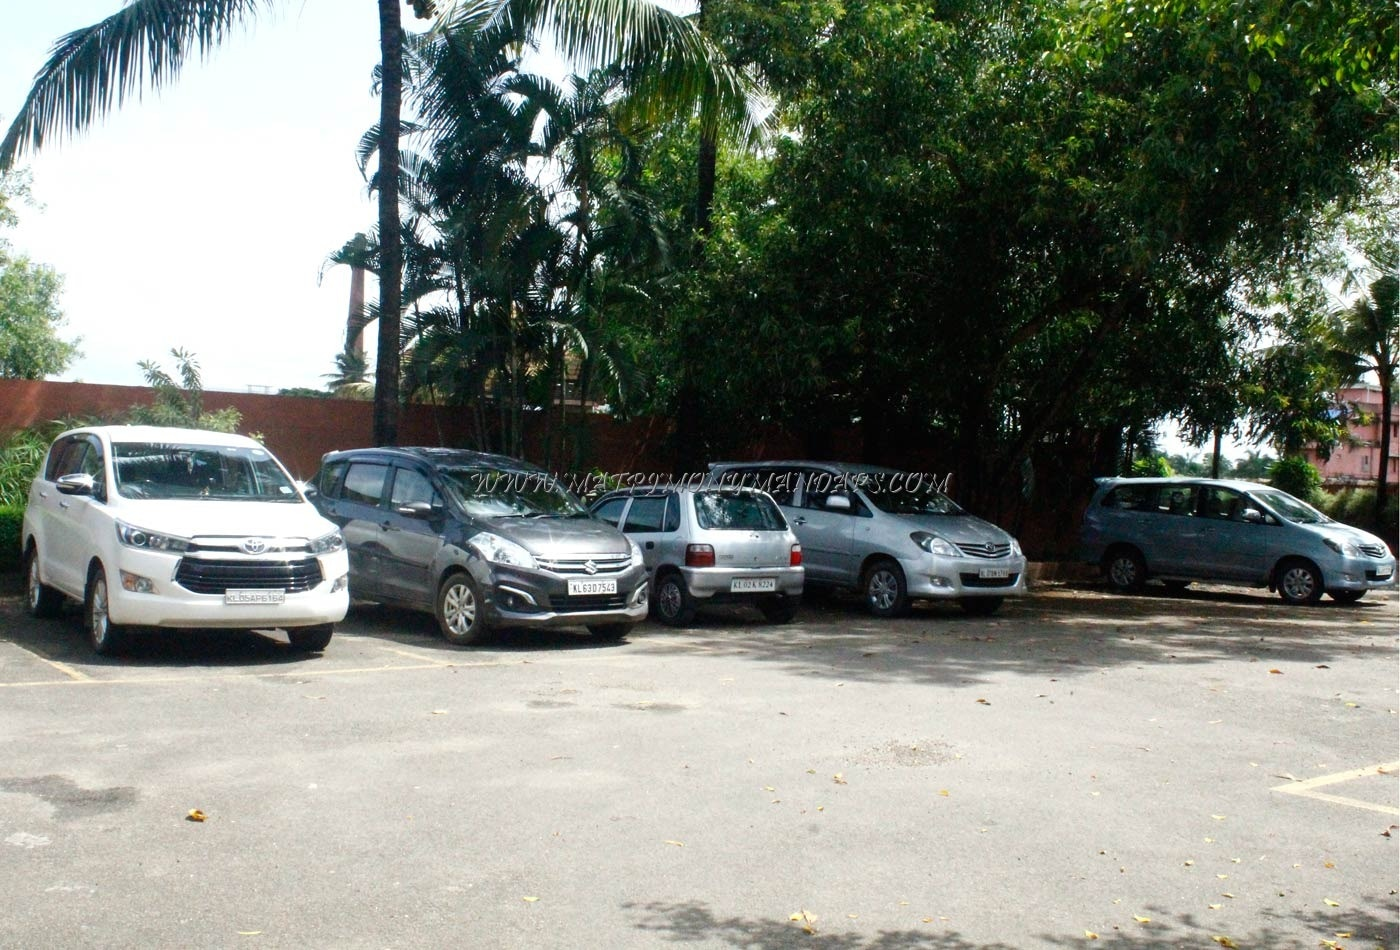 SAJ Earth Resort - Car Parking